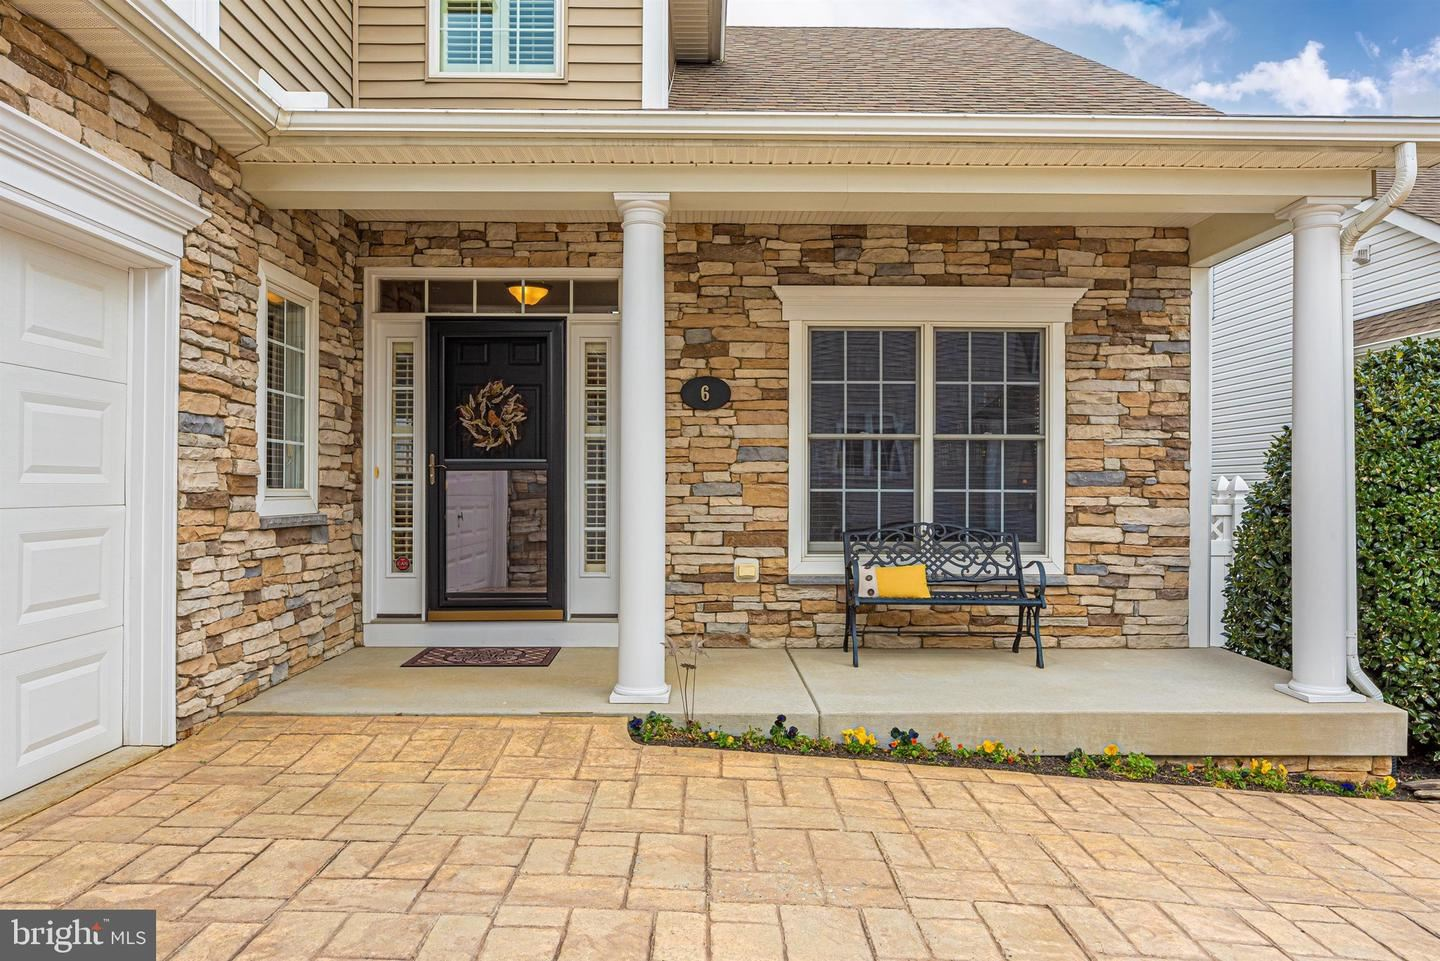 Photo of 6 EVERHART LN, MIDDLETOWN, MD 21769 (MLS # MDFR274372)